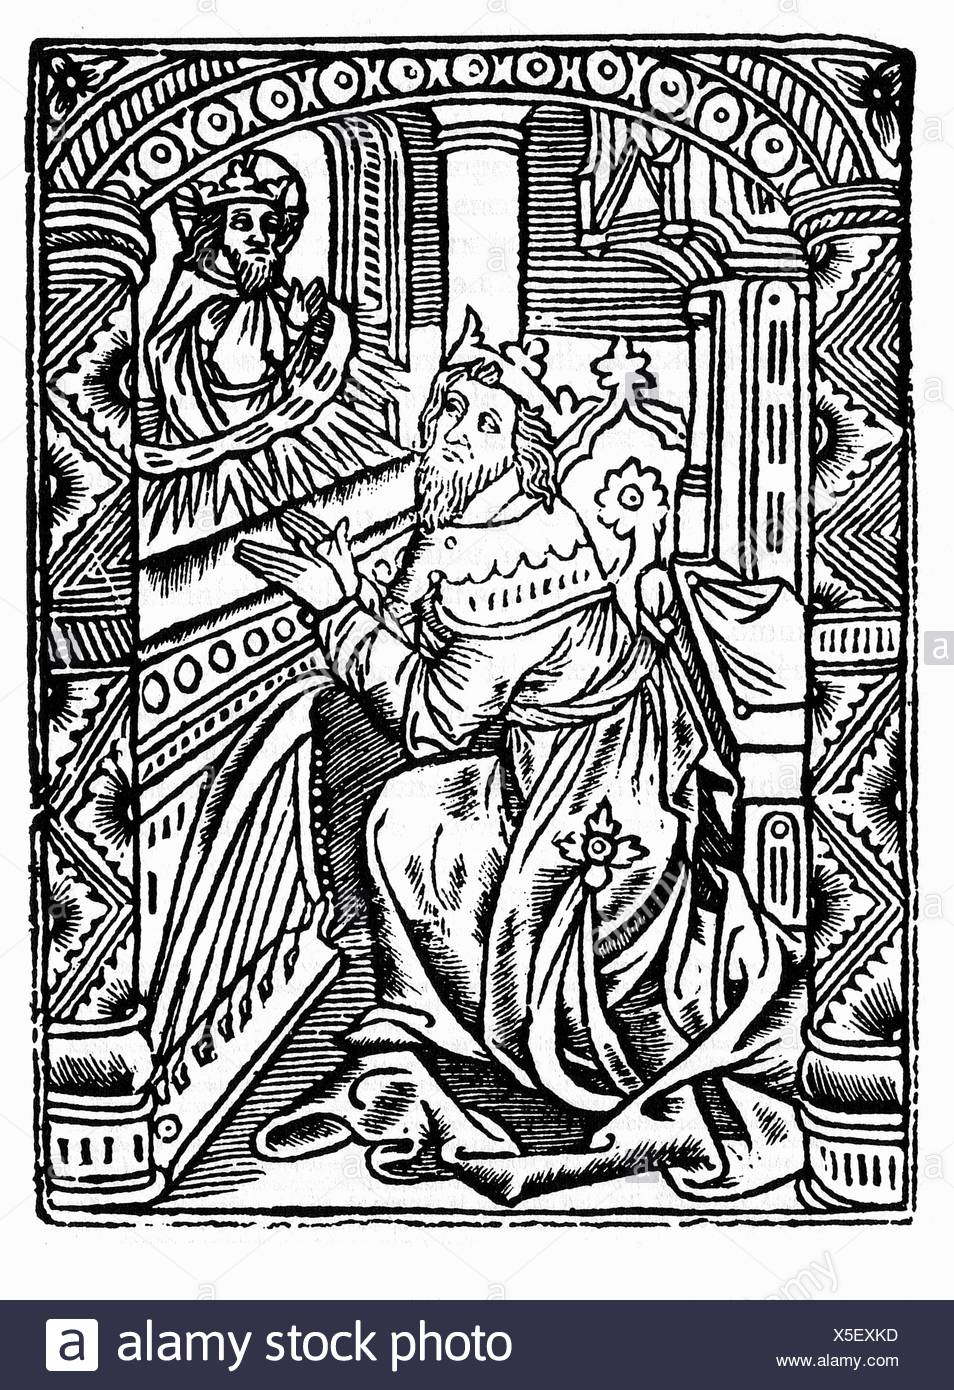 King David Bible High Resolution Stock Photography And Images Alamy